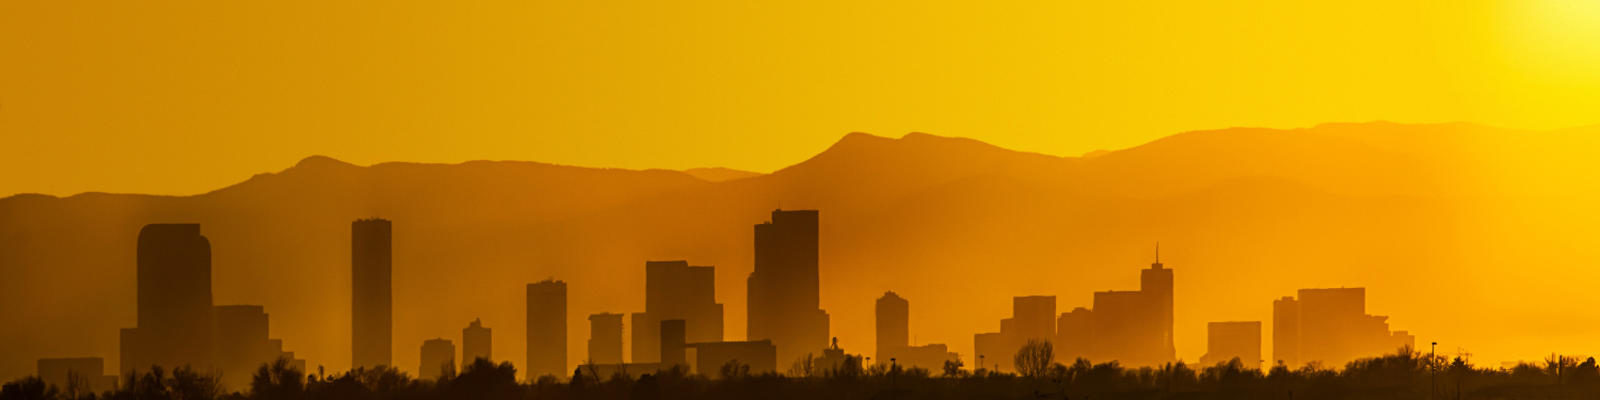 The Denver skyline silhouetted against a golden sunset.